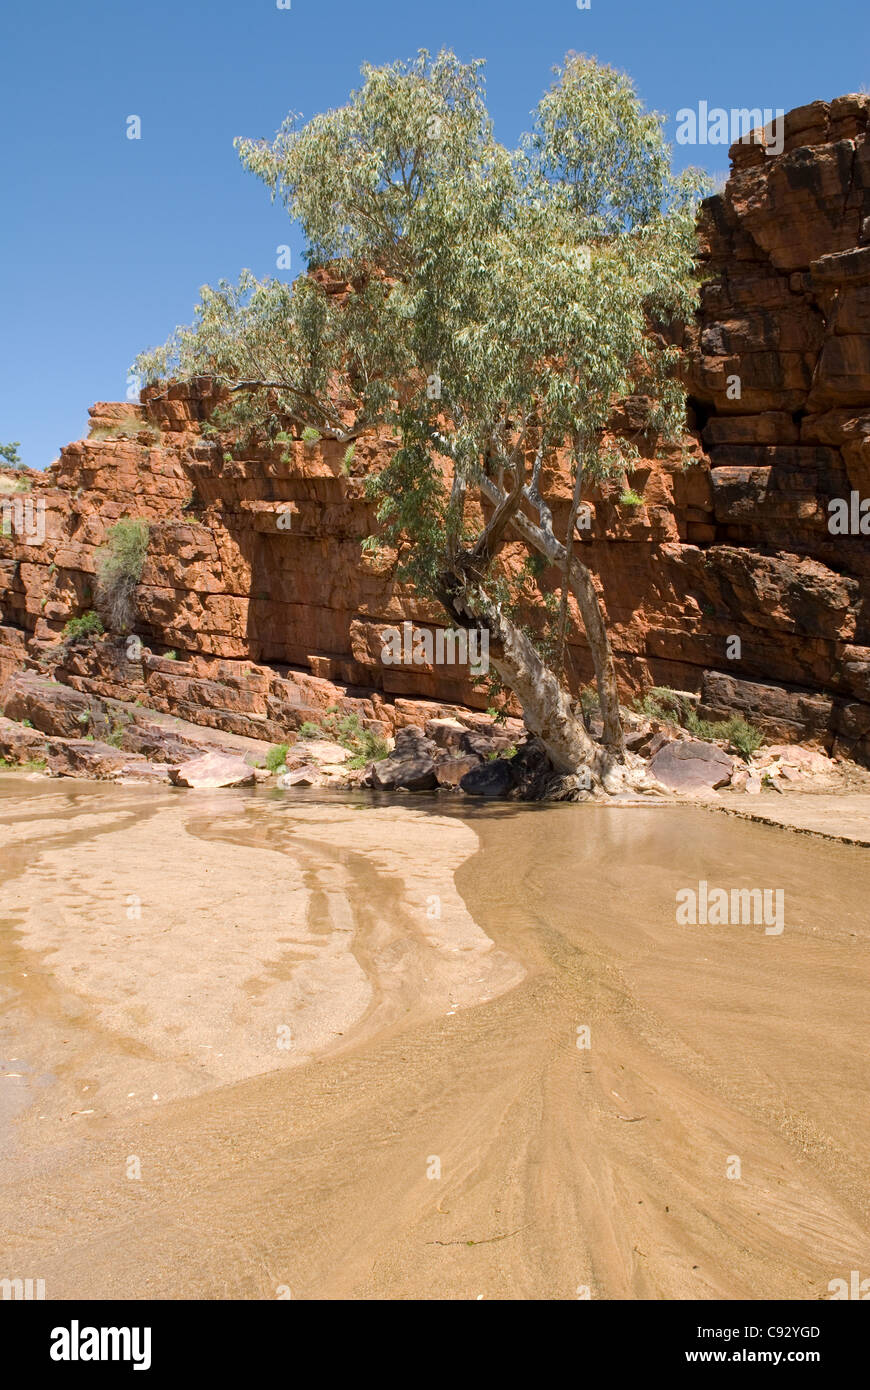 Trephina Gorge, in the East MacDonnell Ranges, is noted for its sheer quartzite cliffs and River Red Gum lined watercourses. - Stock Image